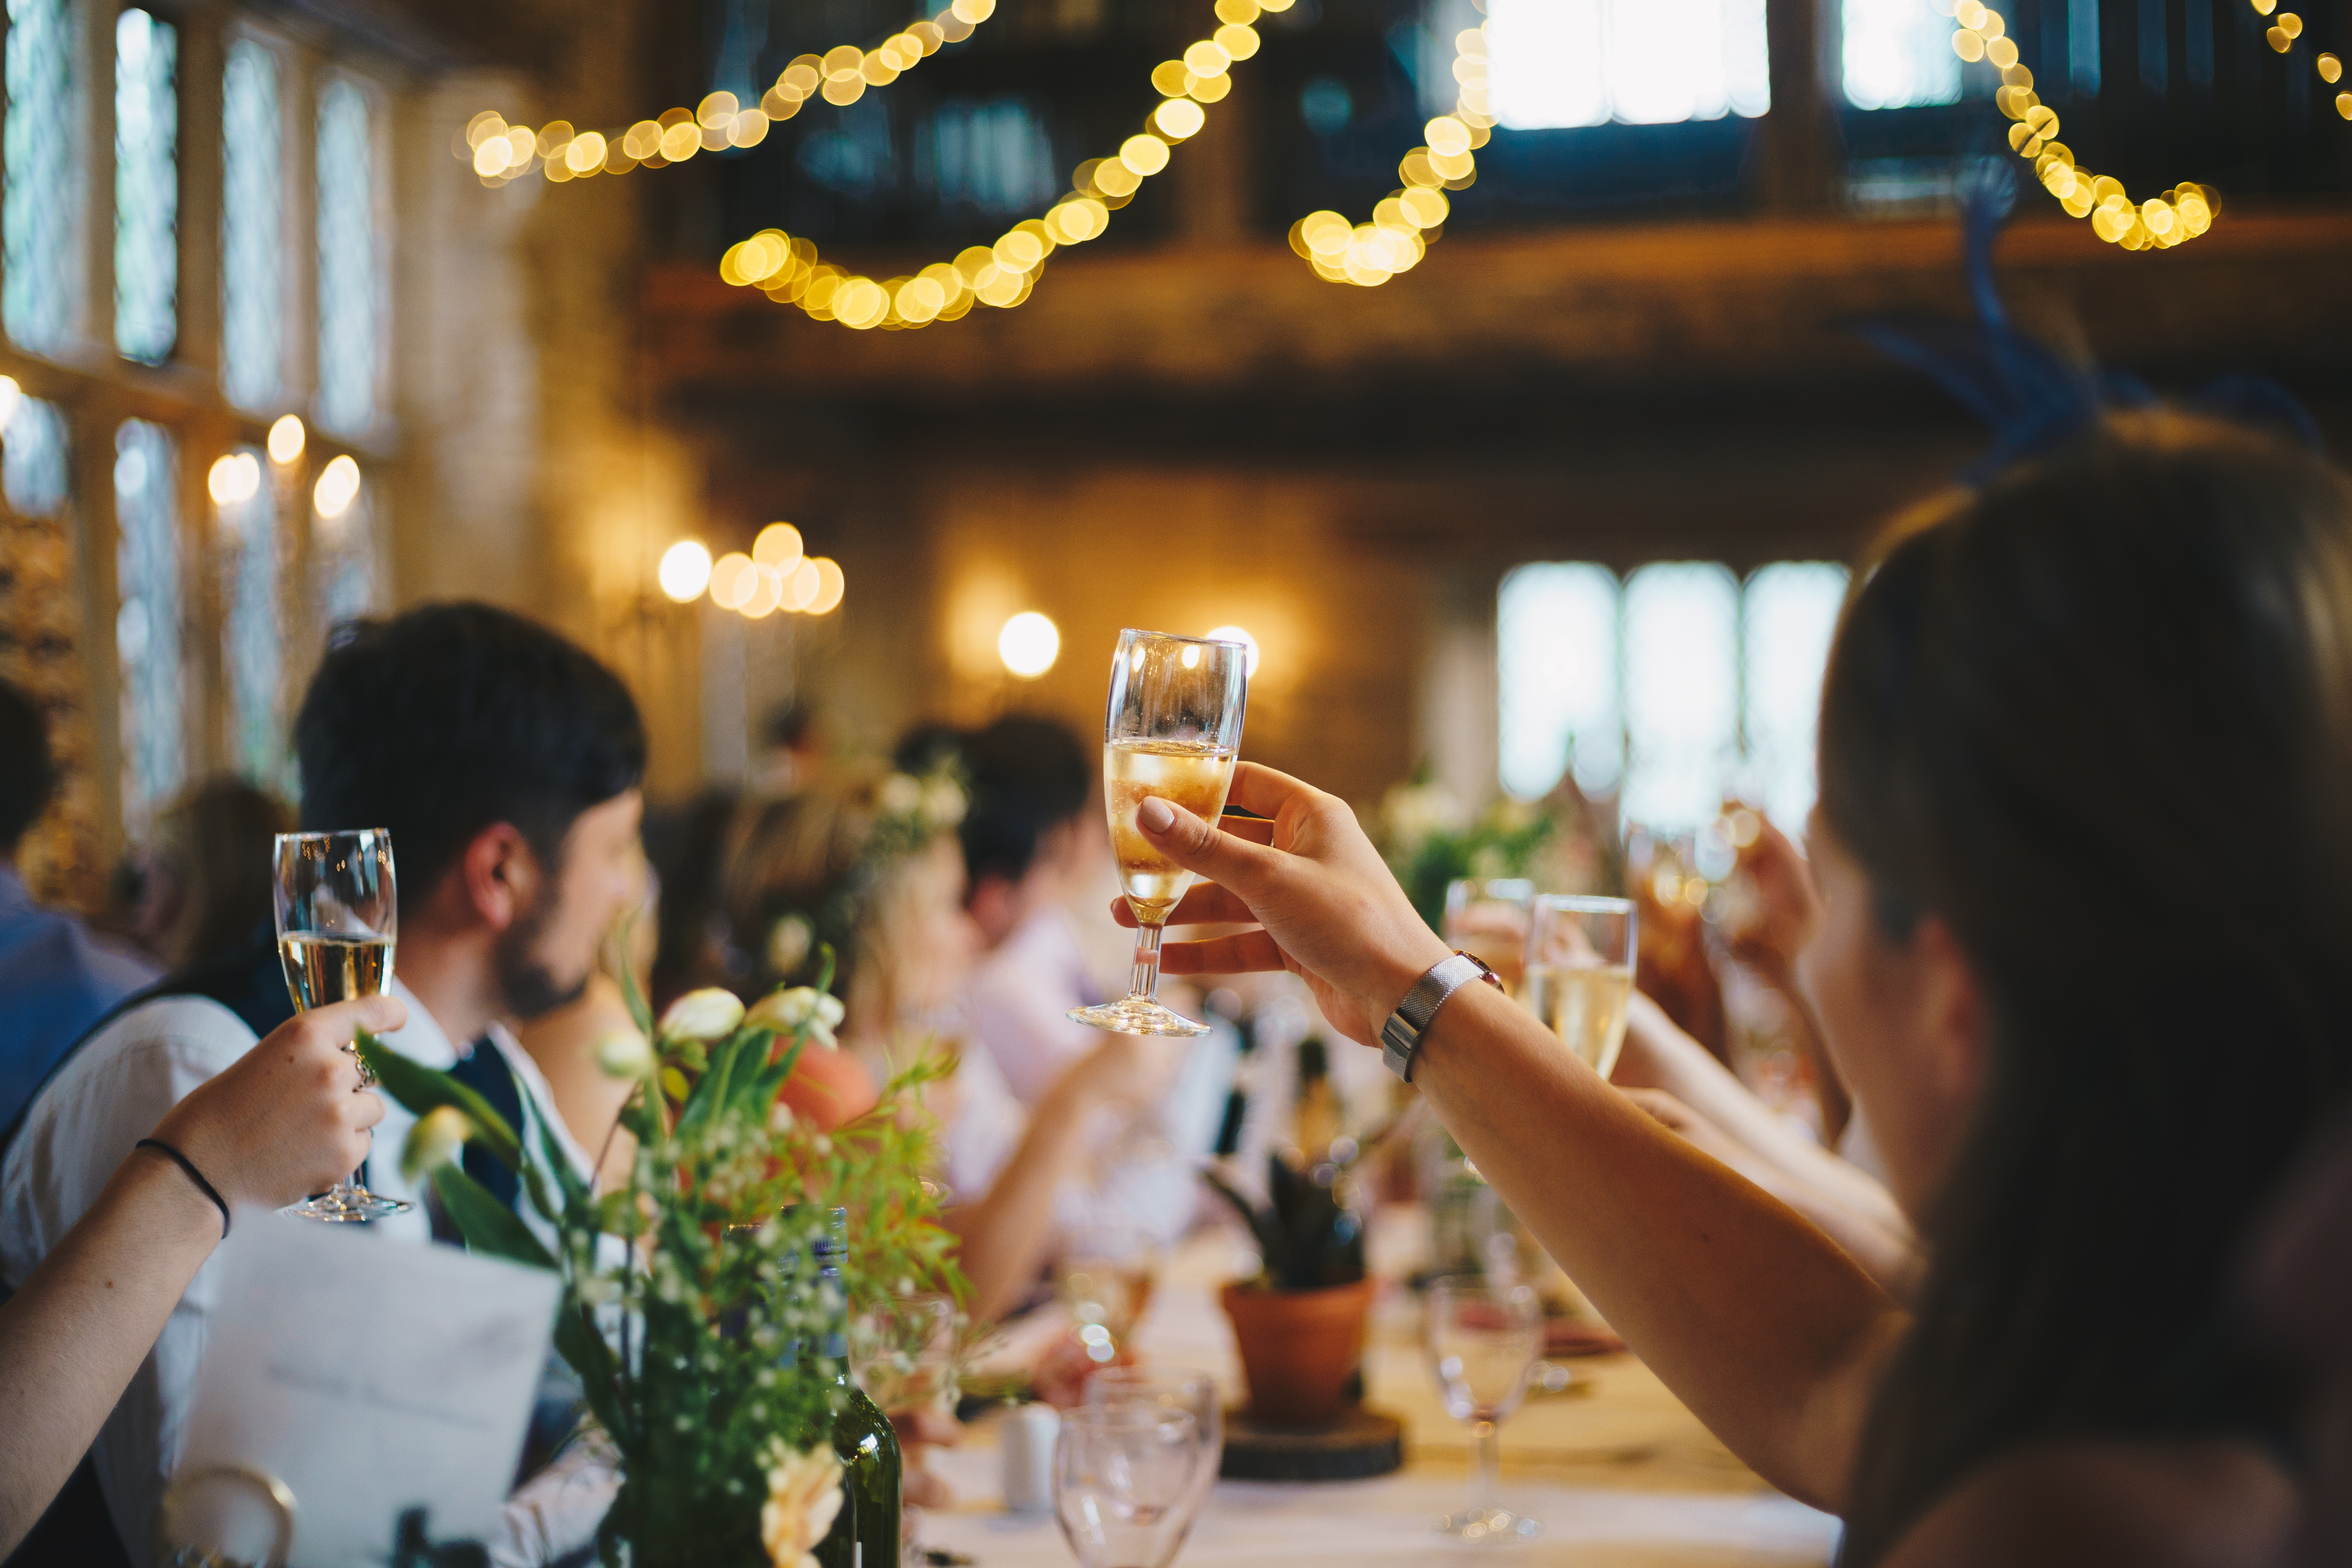 People making a toast